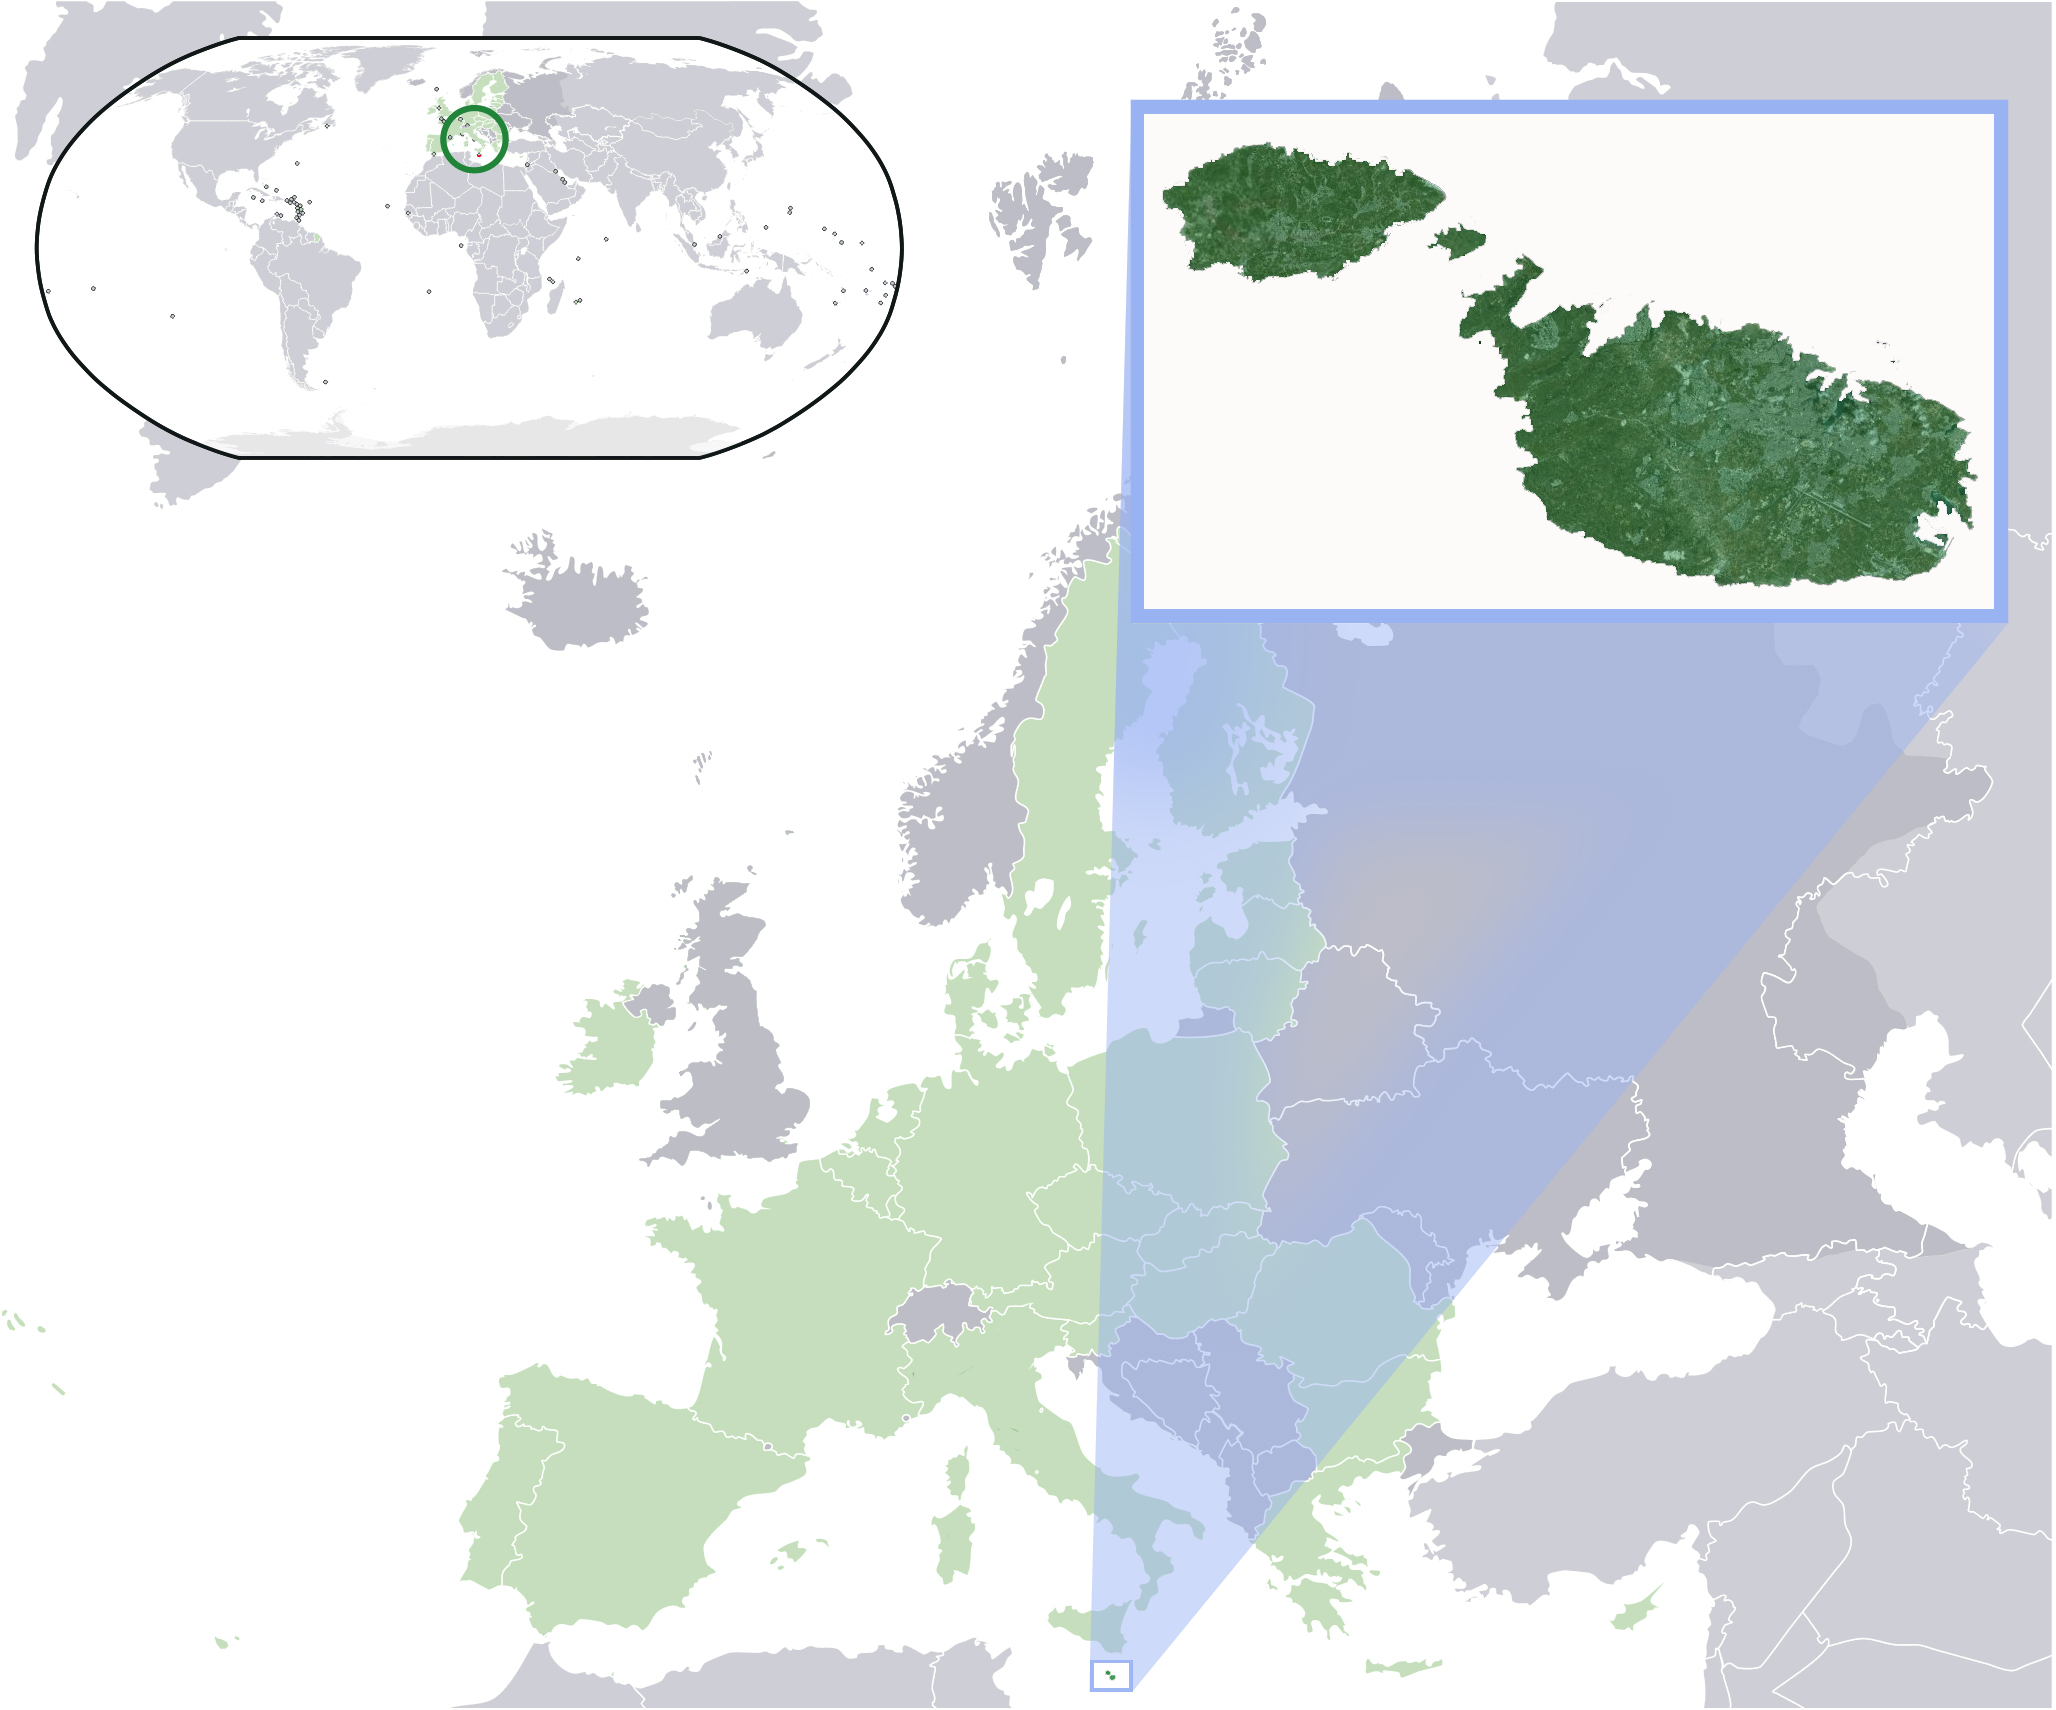 FileLocation Malta EU Europepng Wikimedia Commons